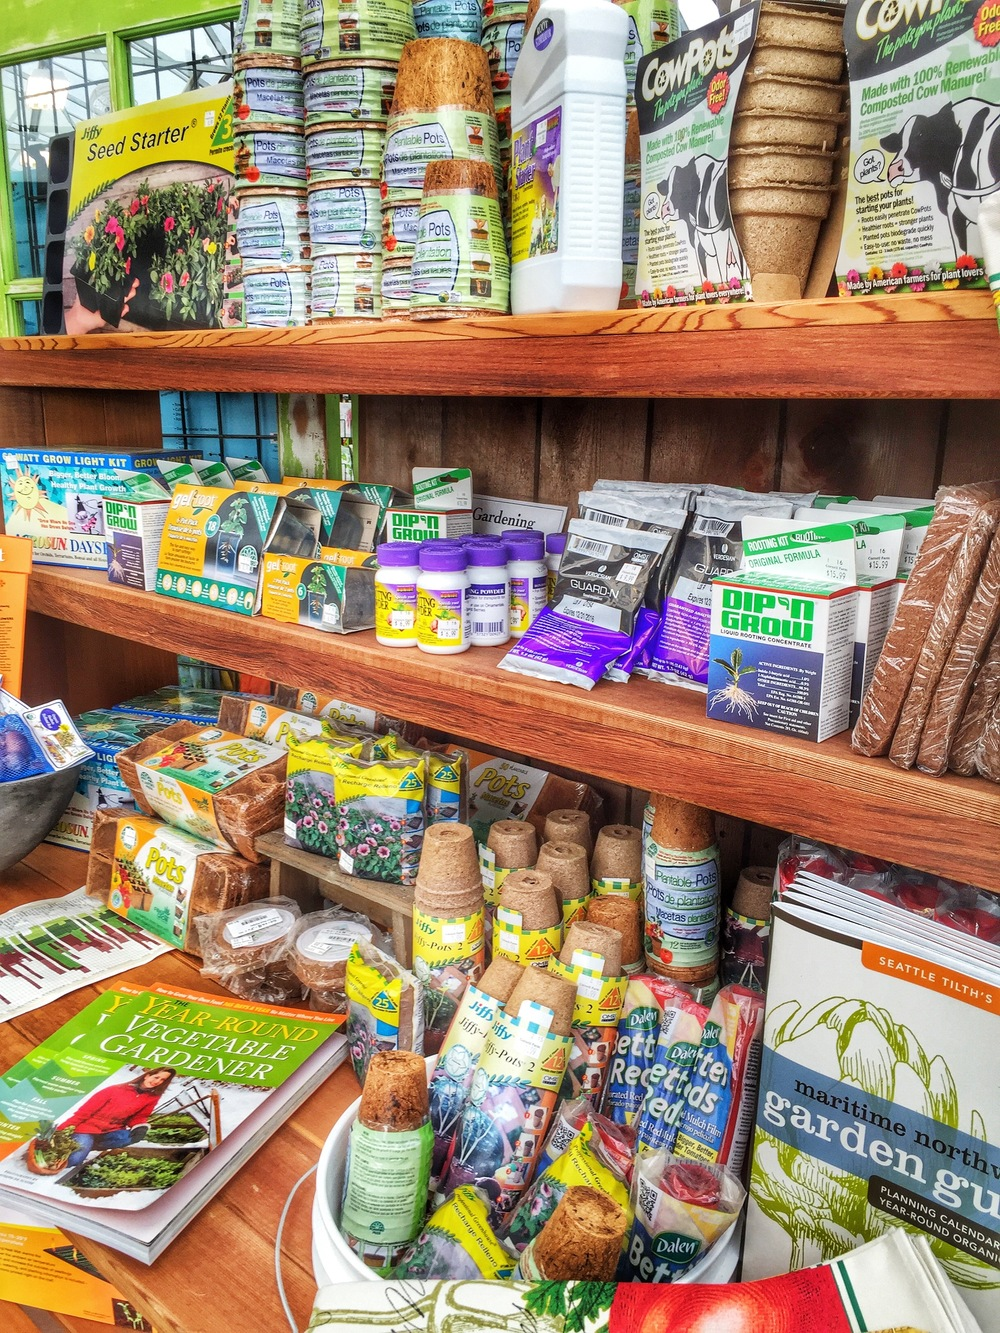 Seed Starting Supplies at Cornell Farm